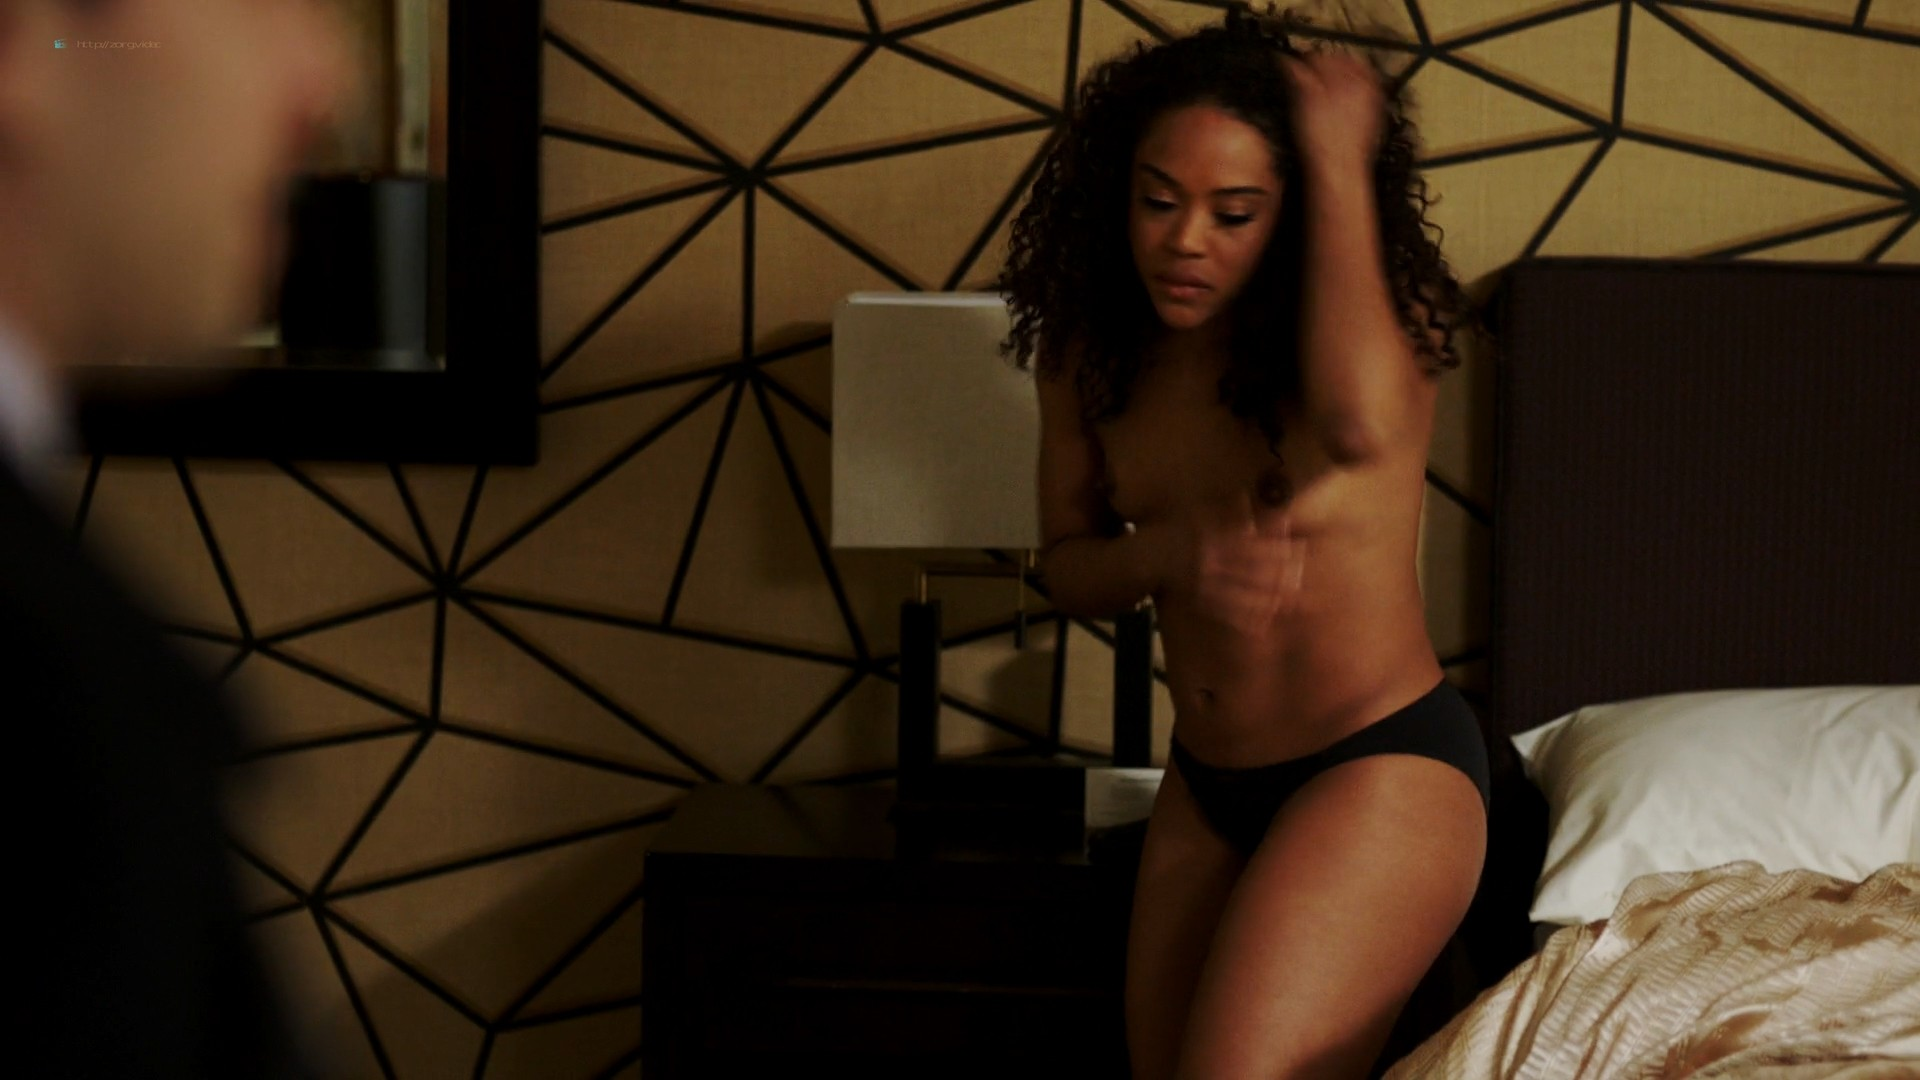 Candace Maxwell nude hot sex - Power (2019) s6e7 1080p (4)